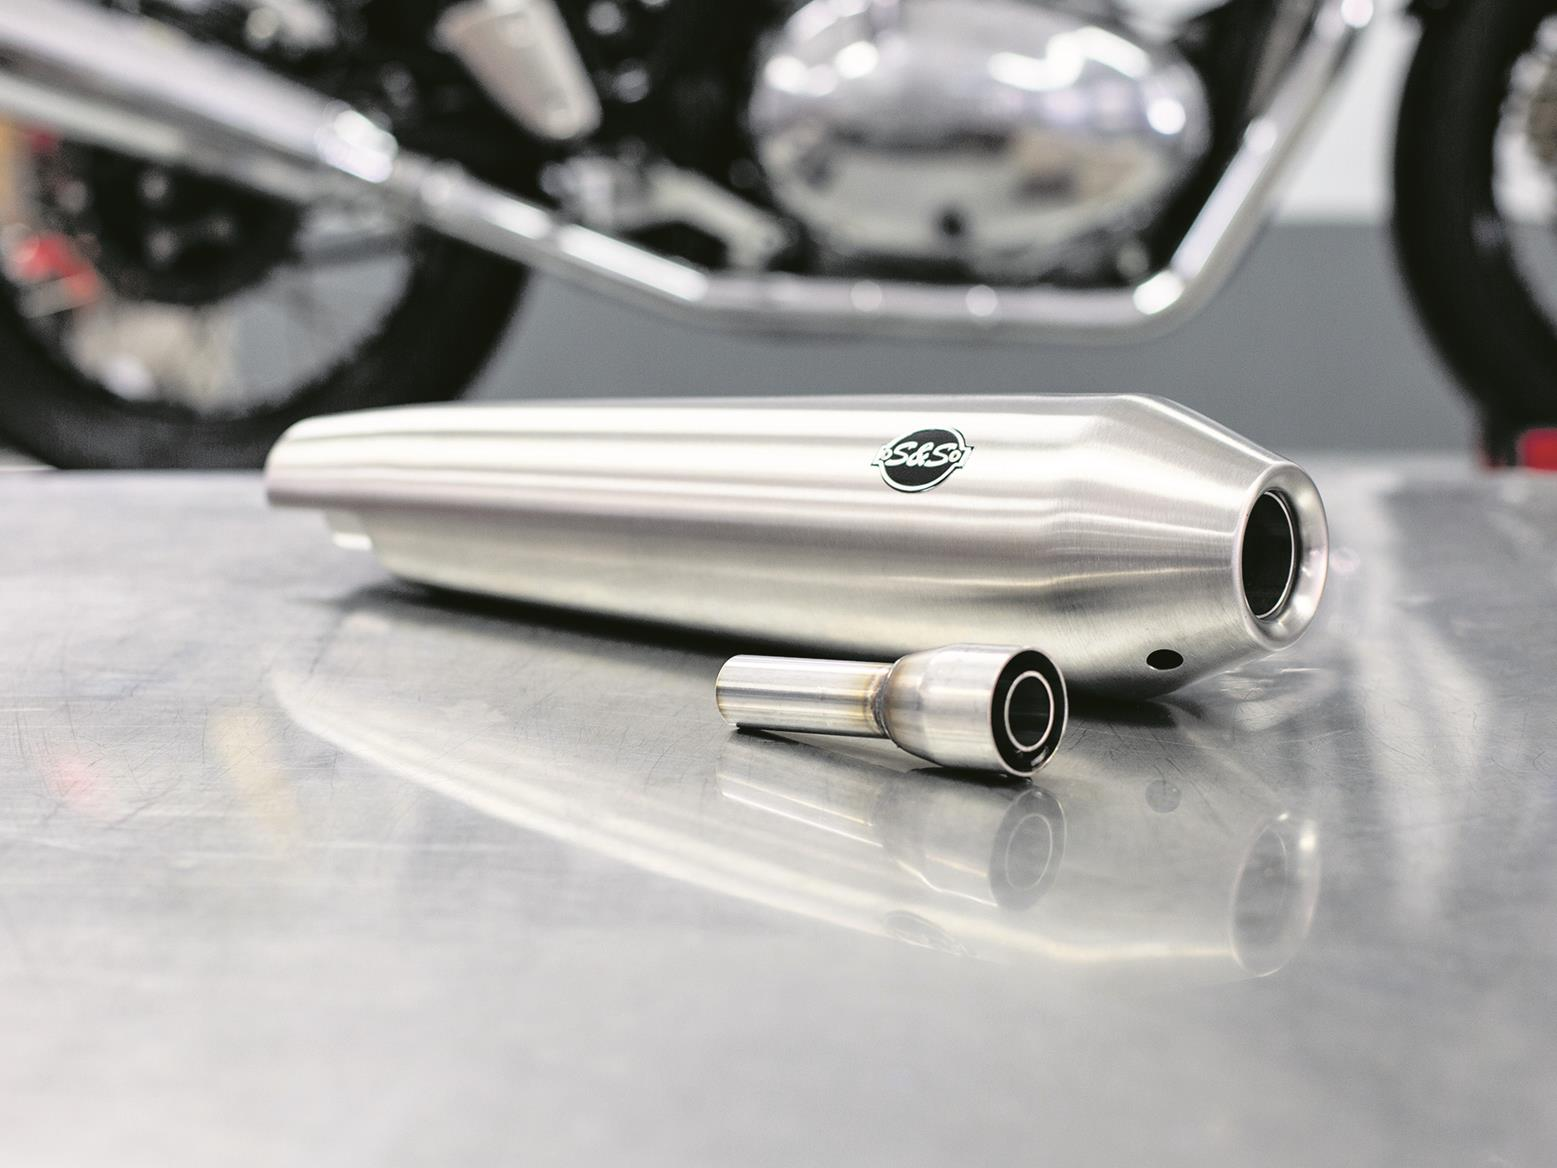 S&S slip-on exhaust for Royal Enfield 650 models